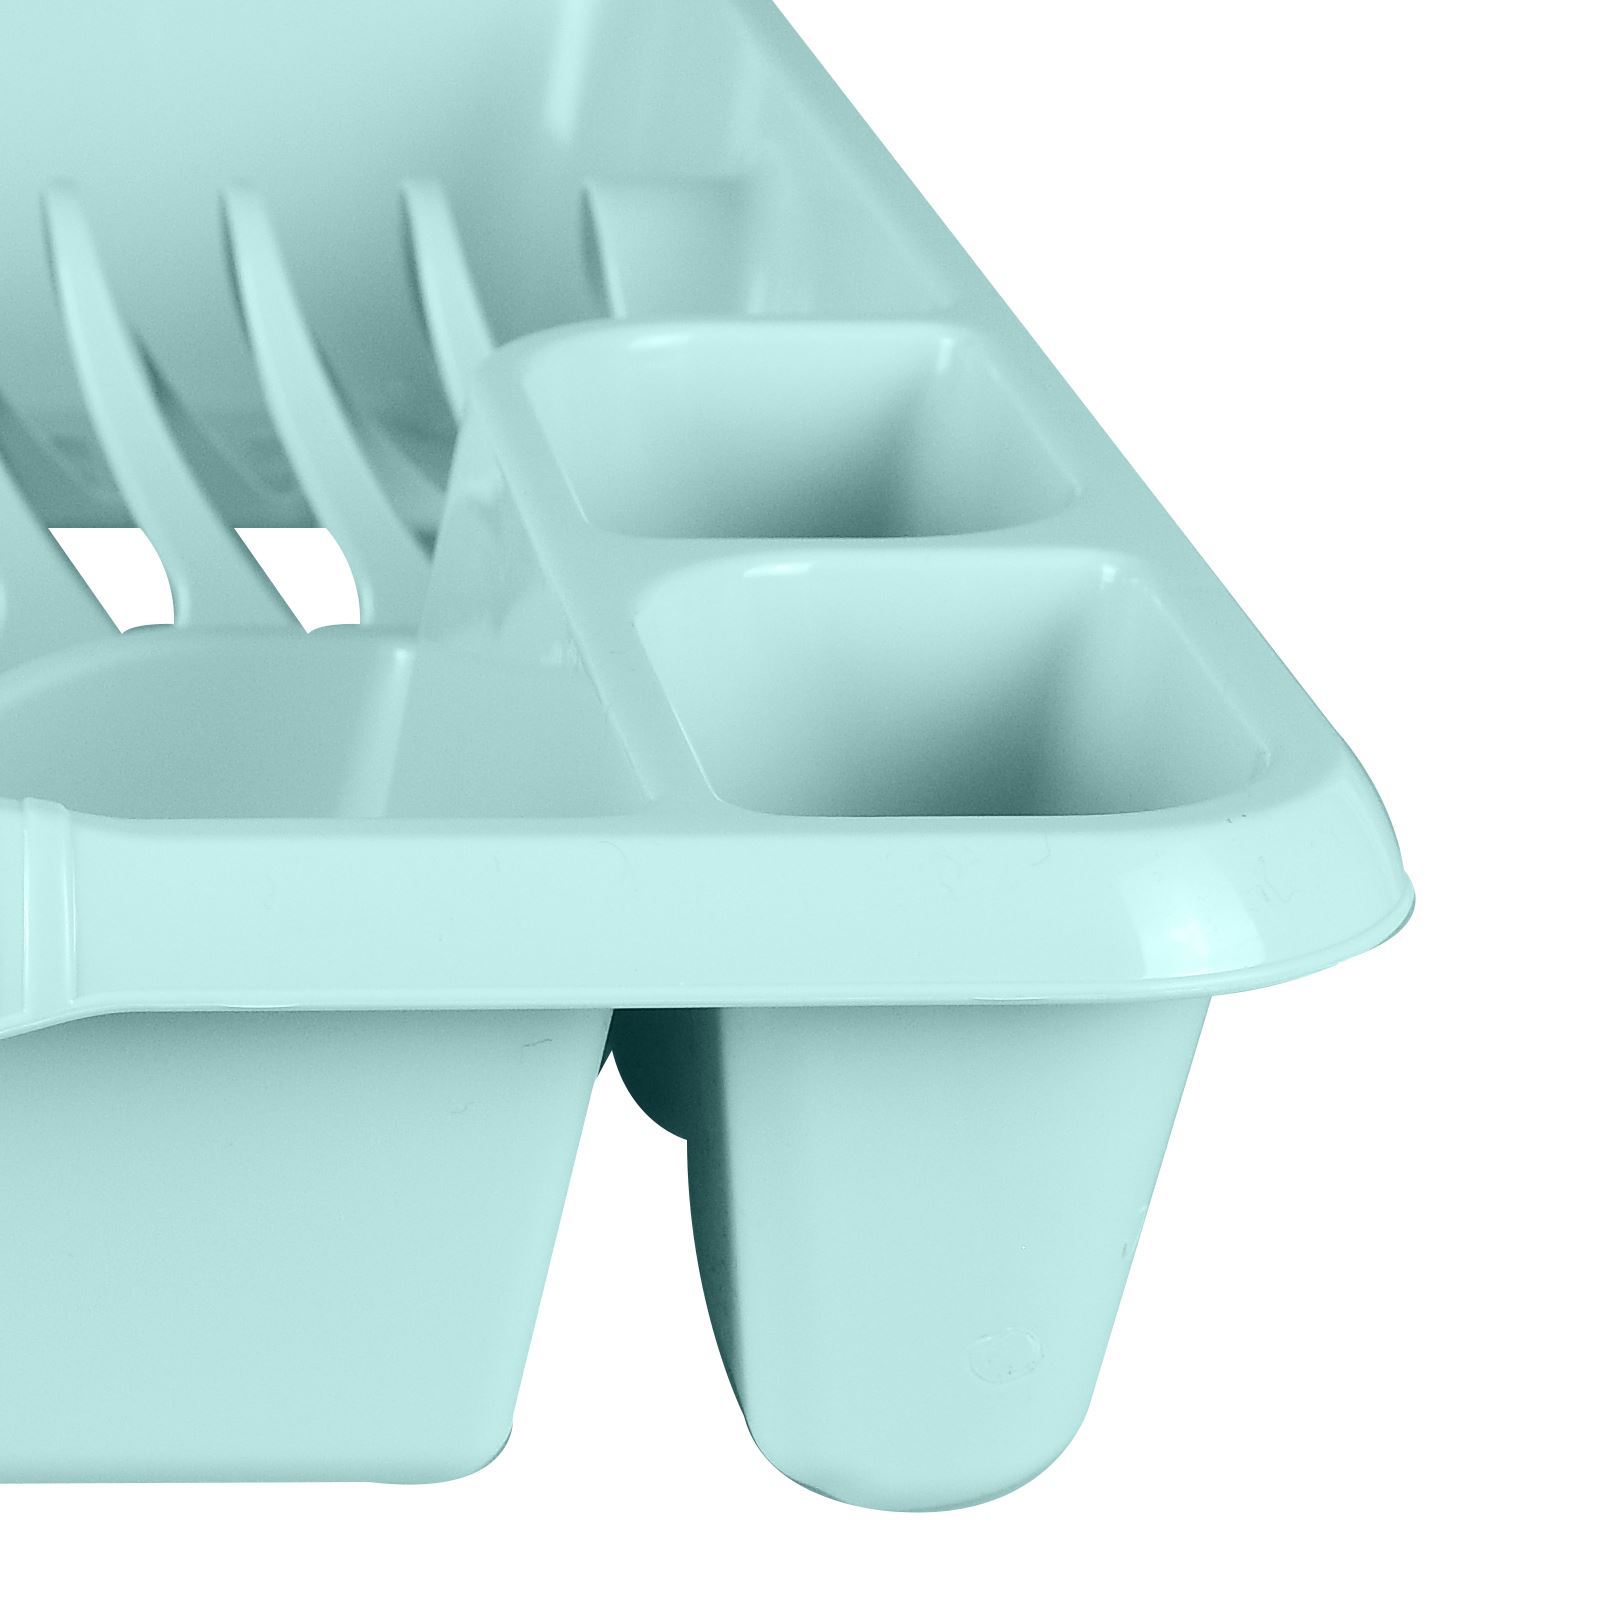 Large Plastic Dish Drainer Board Plate Cutlery Sink Rack Holder ...